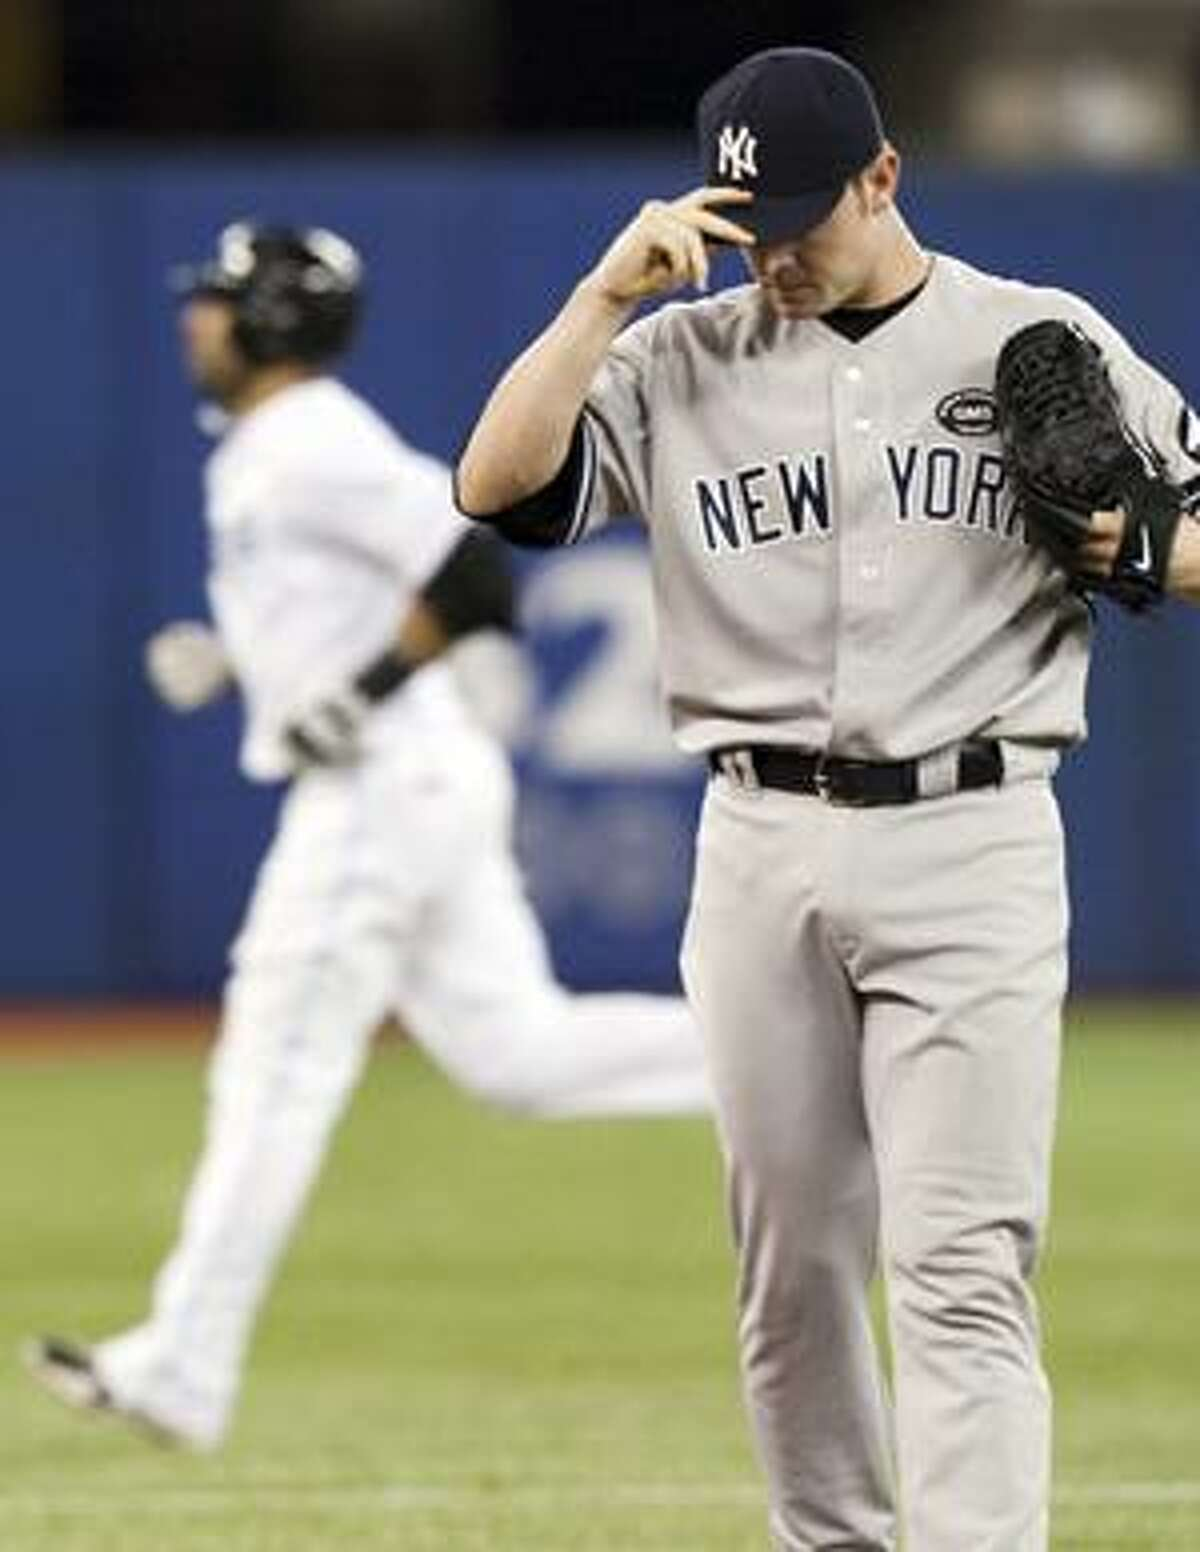 AP New York Yankees pitcher David Robertson hangs his head as Toronto Blue Jays Jose Bautista rounds the bases on his game-winning homer during the eighth inning of Monday's game in Toronto. The Blue Jays beat the Yankees 3-2.